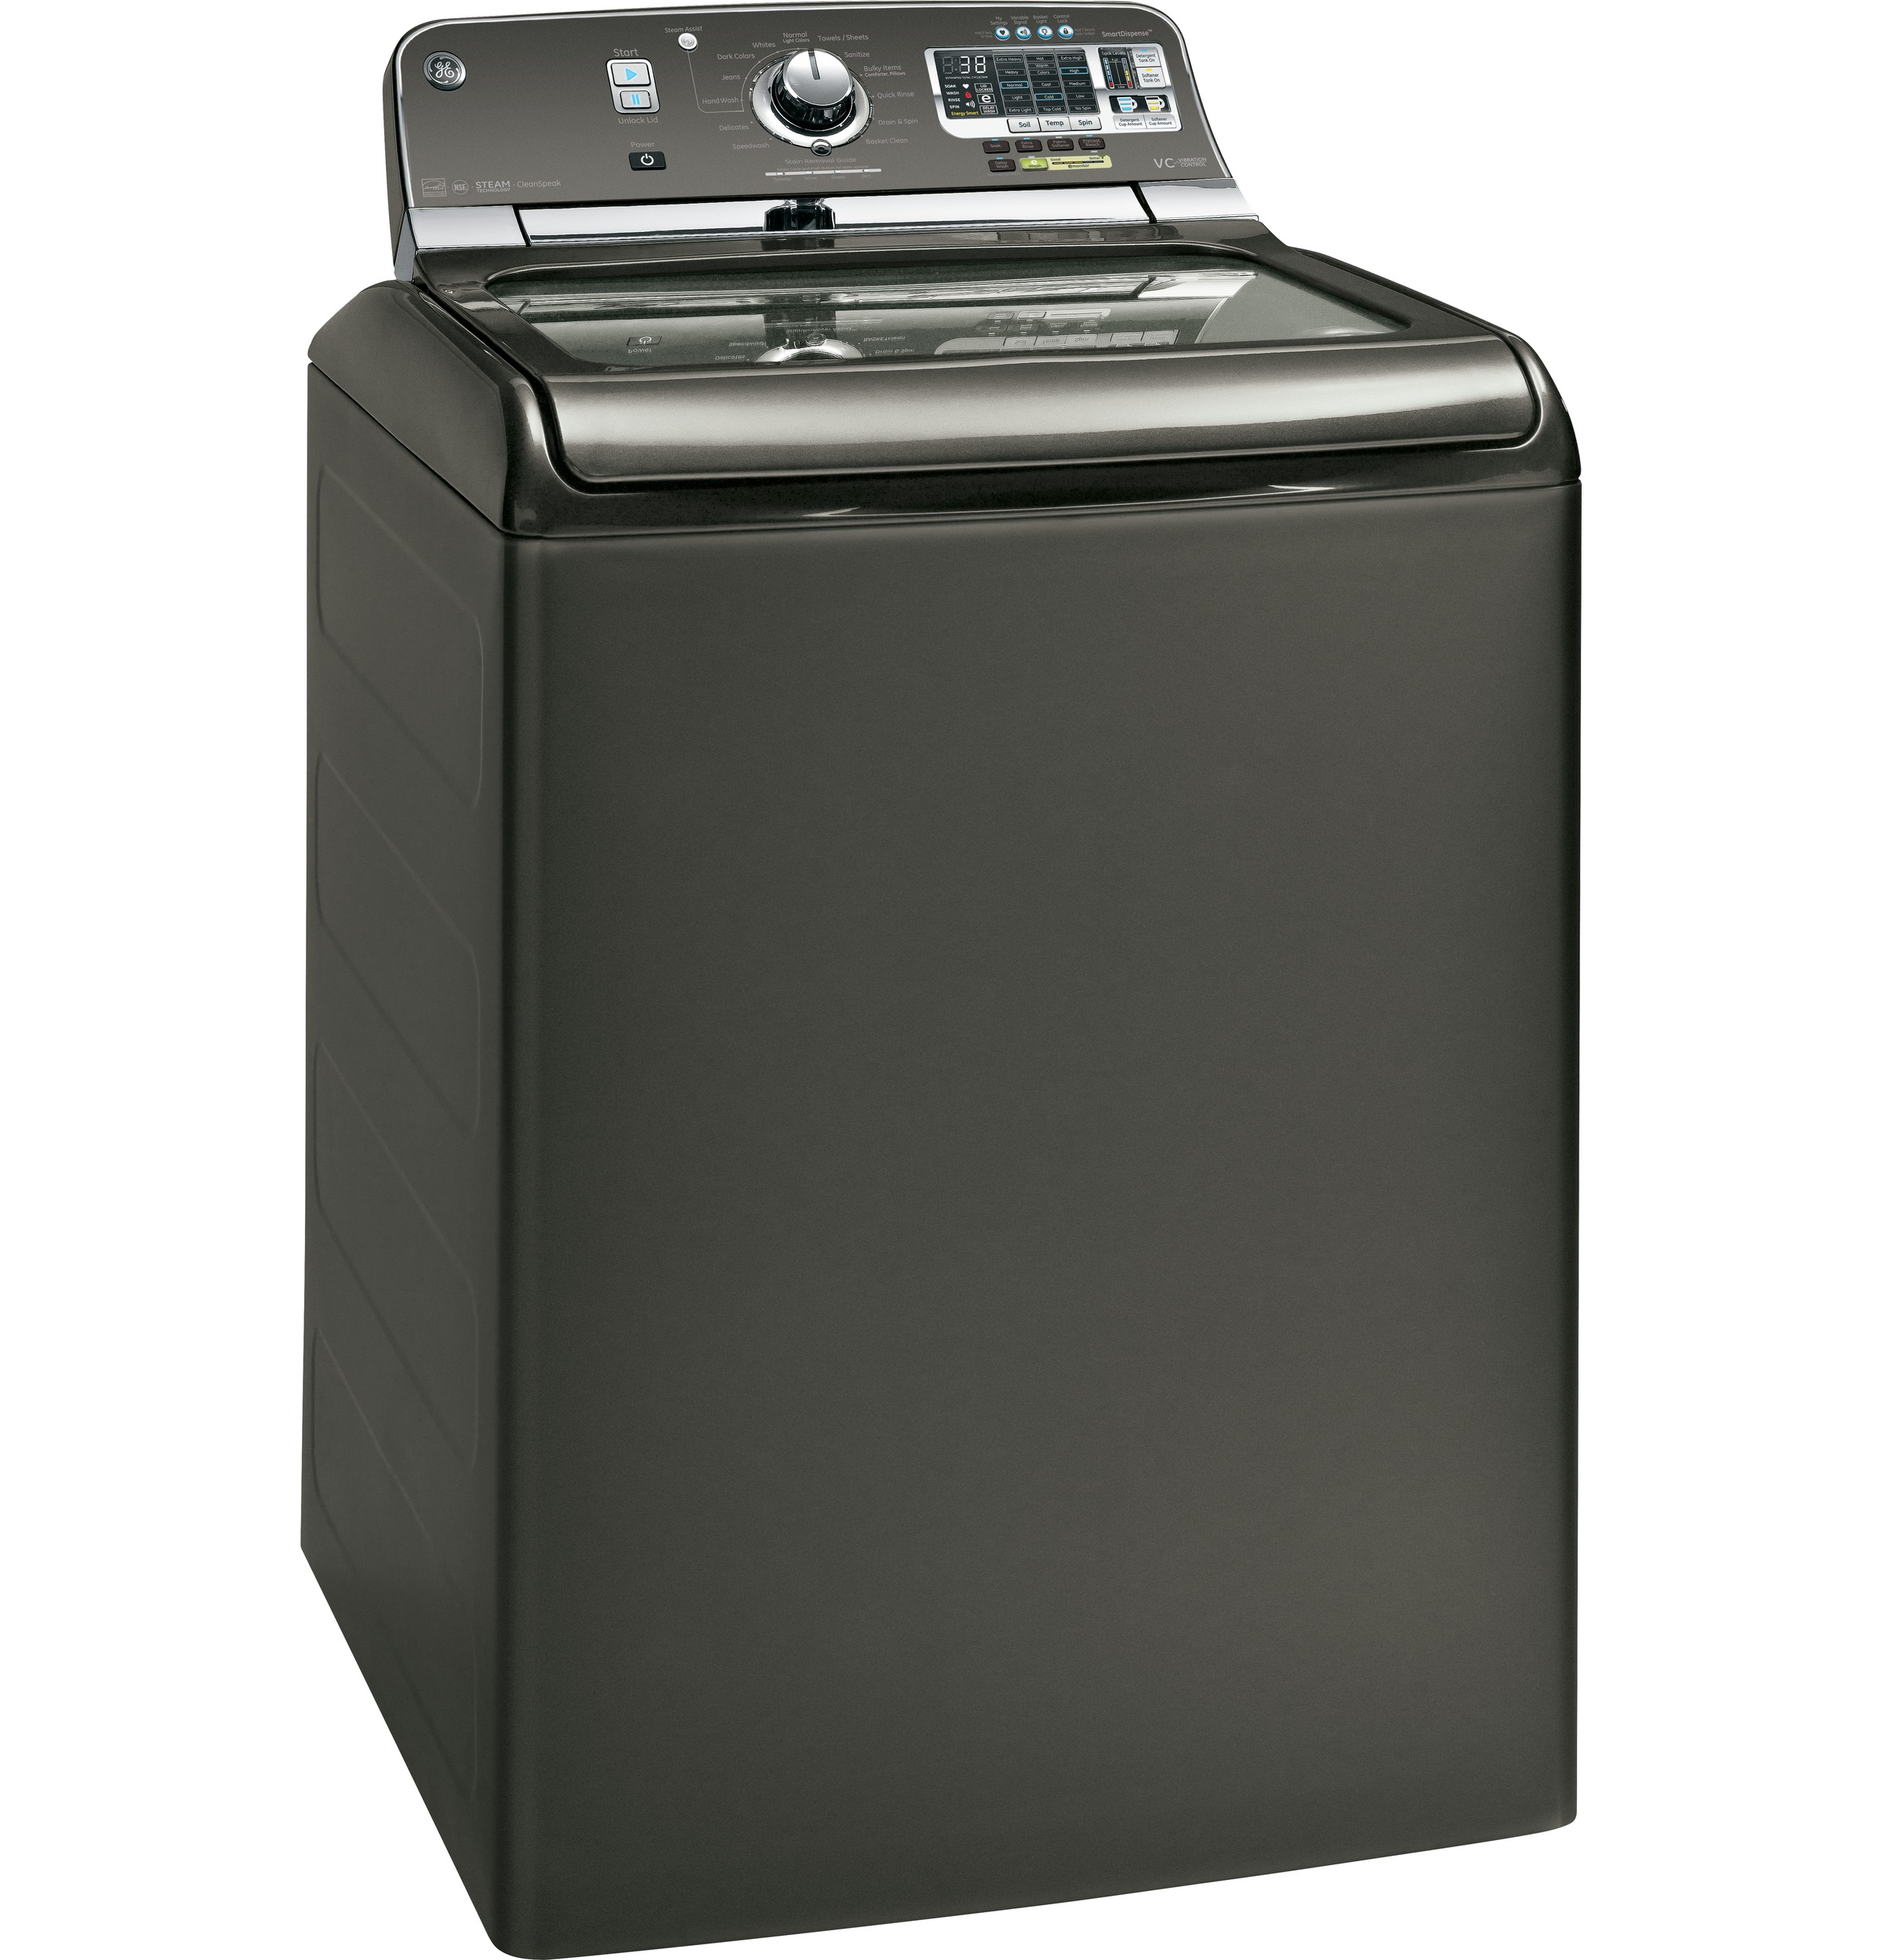 Ge 50 Doe Cu Ft Capacity Washer With Stainless Steel Basket And Semi Automatic Washing Machine Wiring Diagram Pdf Product Image